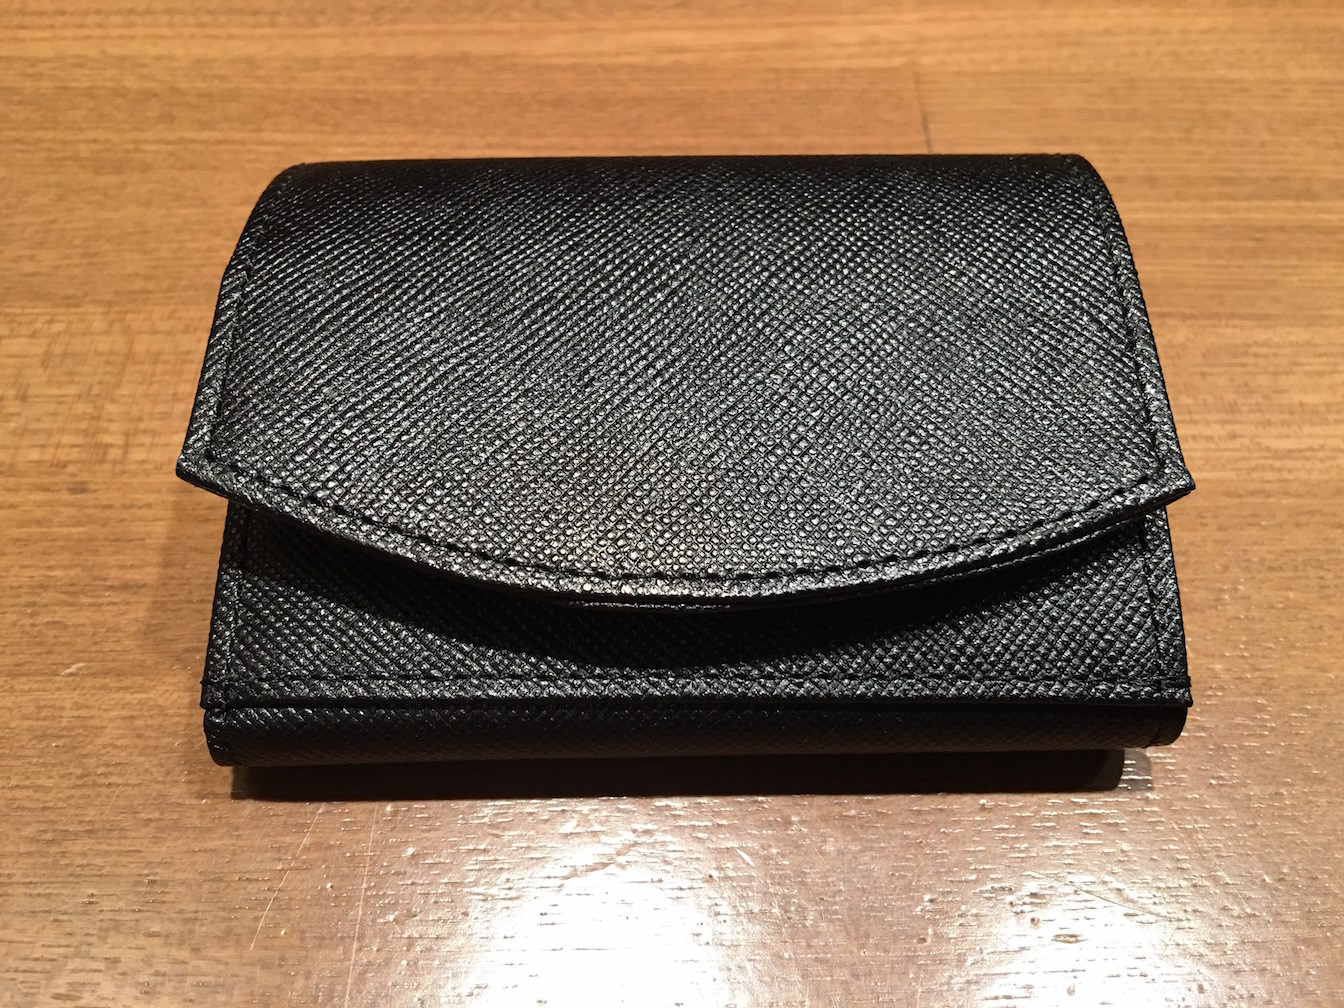 Hammock wallet compact first impression 1